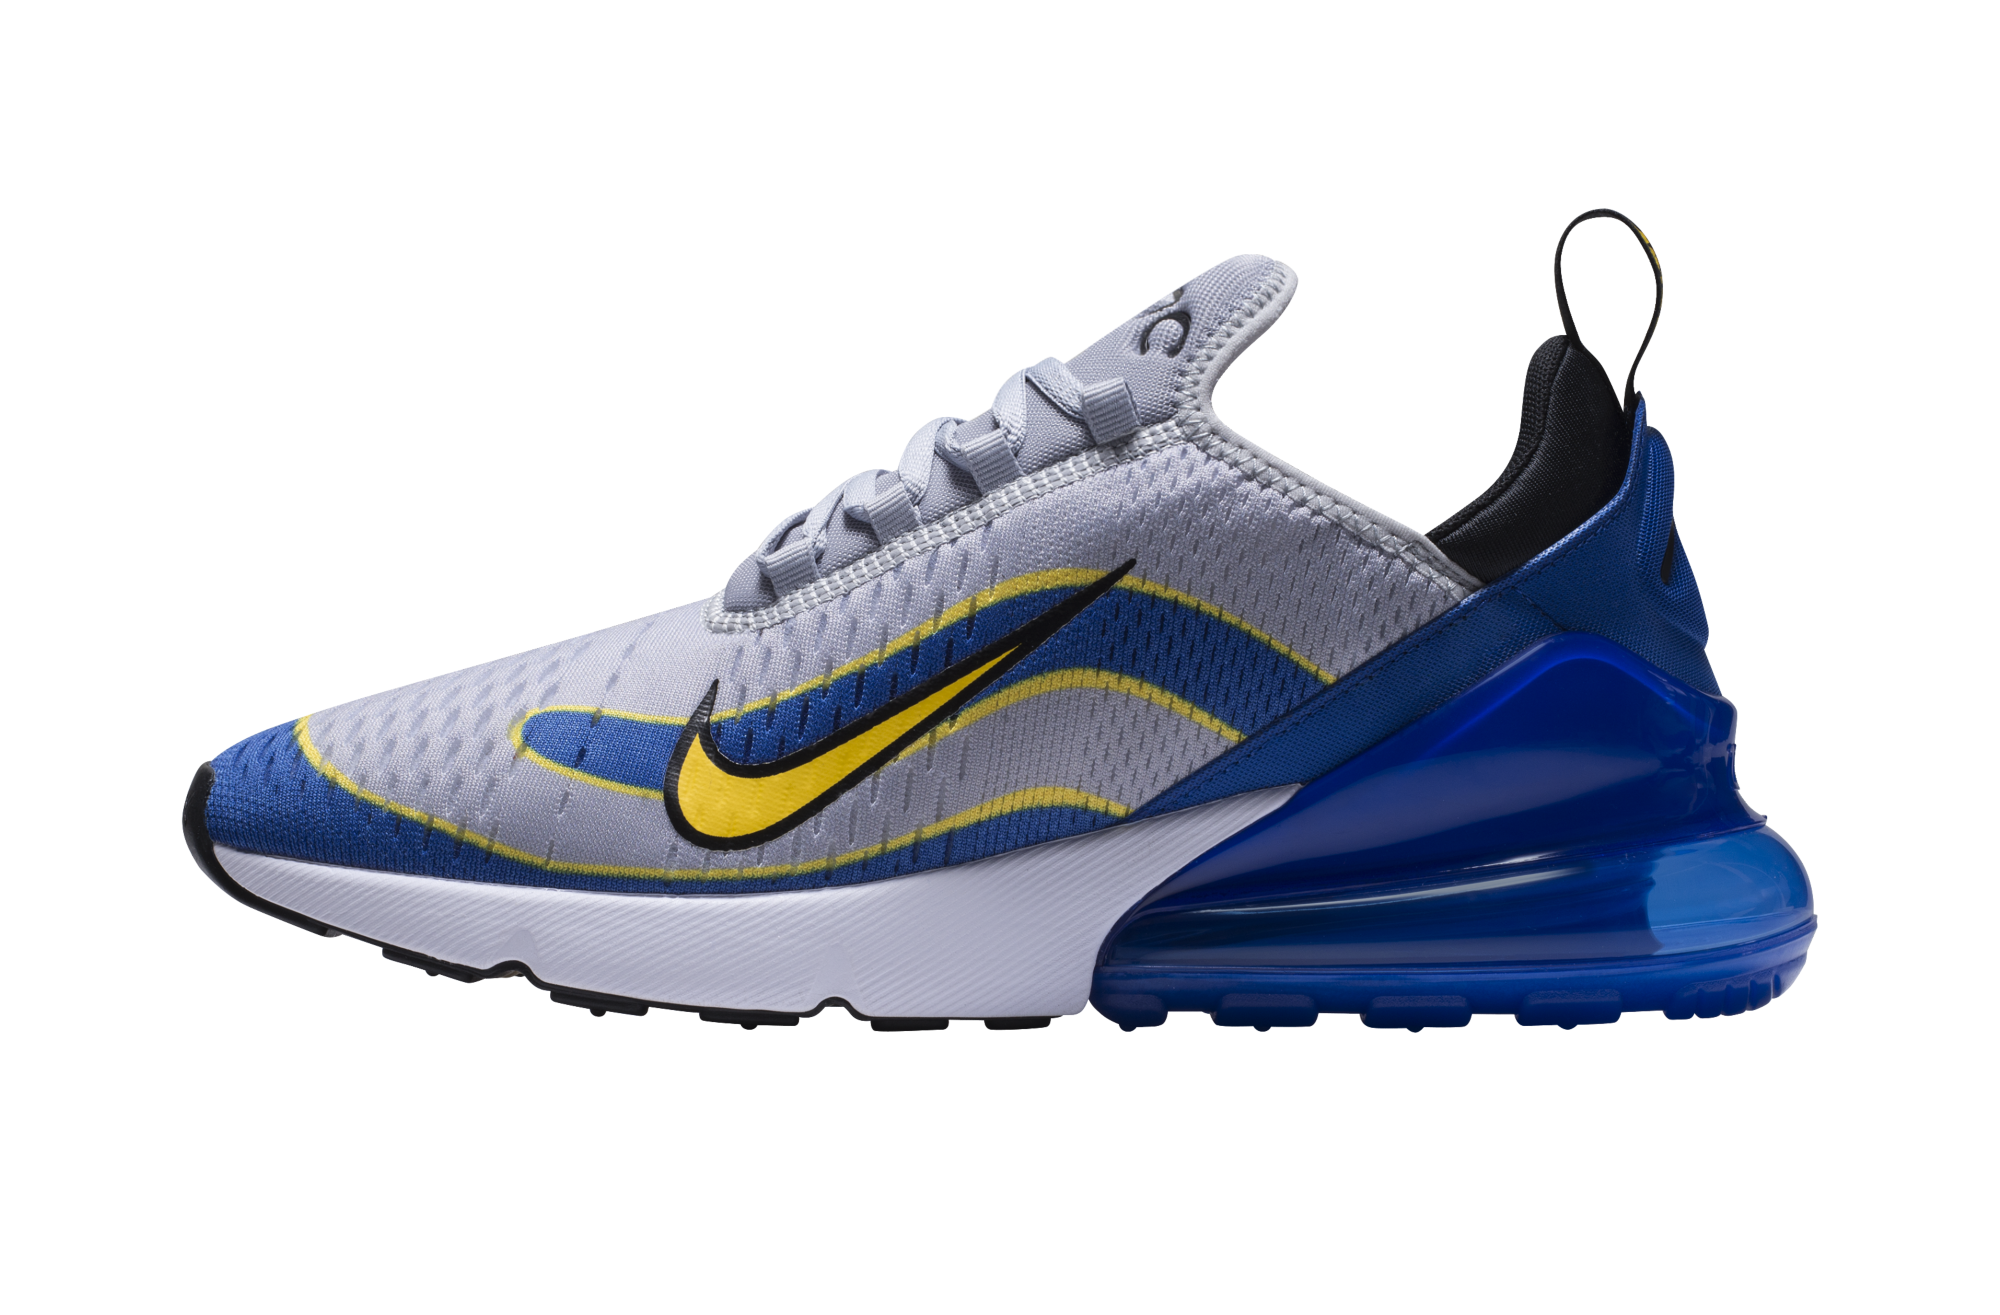 new product 69d21 bd14a Nike Just Dropped an R9-Inspired Mercurial x Air Max 270